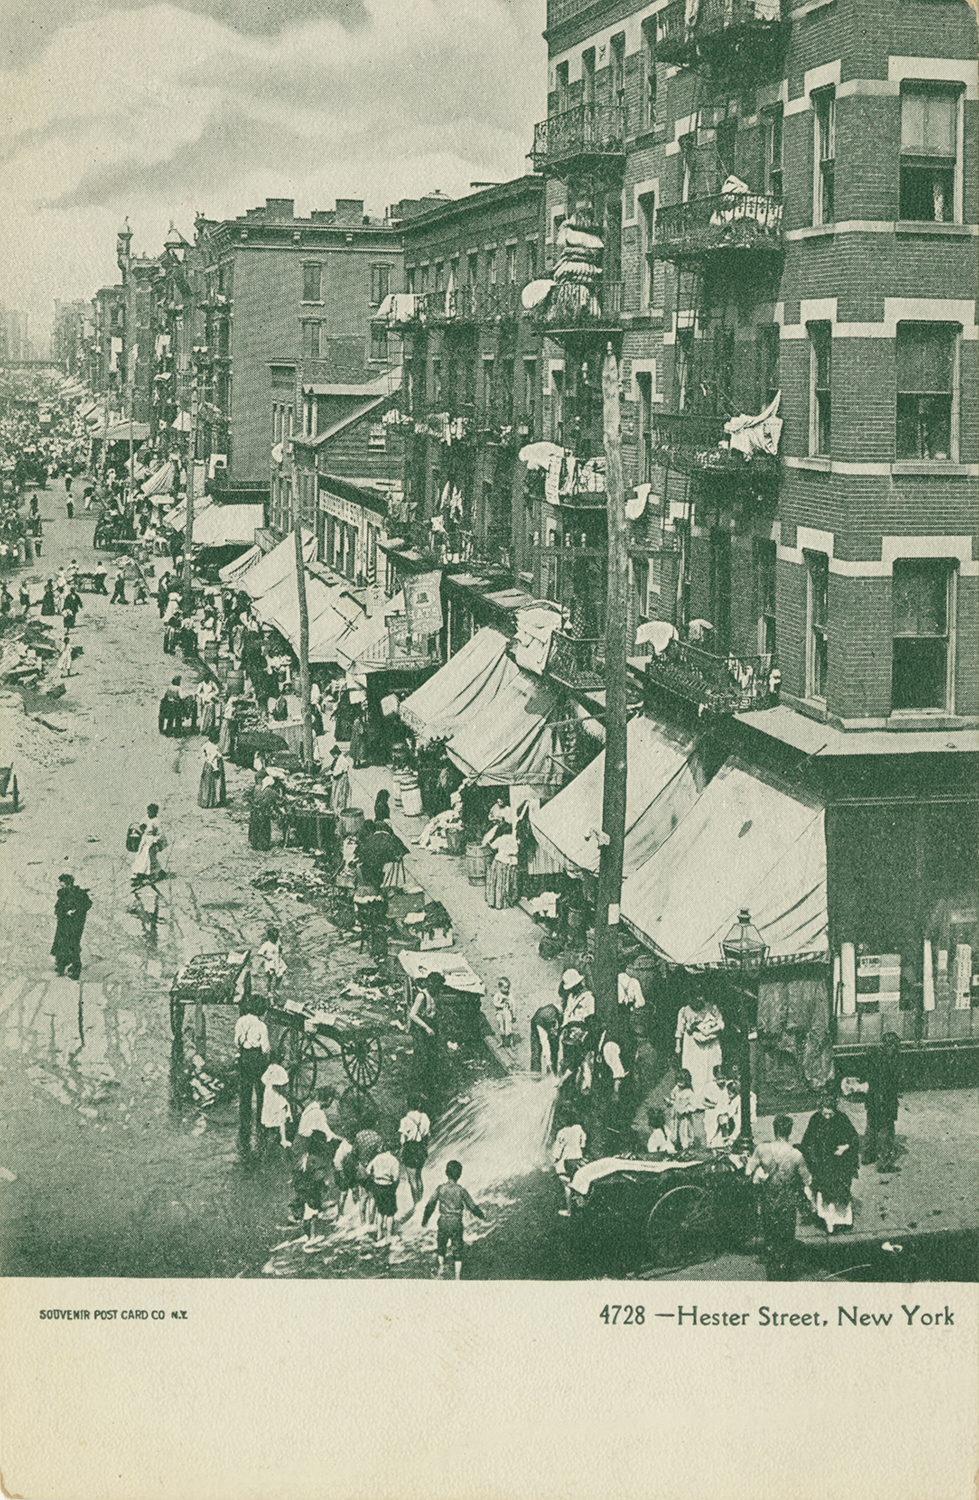 Certain Lower East Side images became iconic, especially those featuring crowded Hester Street. This image appears on five different cards in the Blavatnik Archive collection, each with a slightly different caption or color scheme.